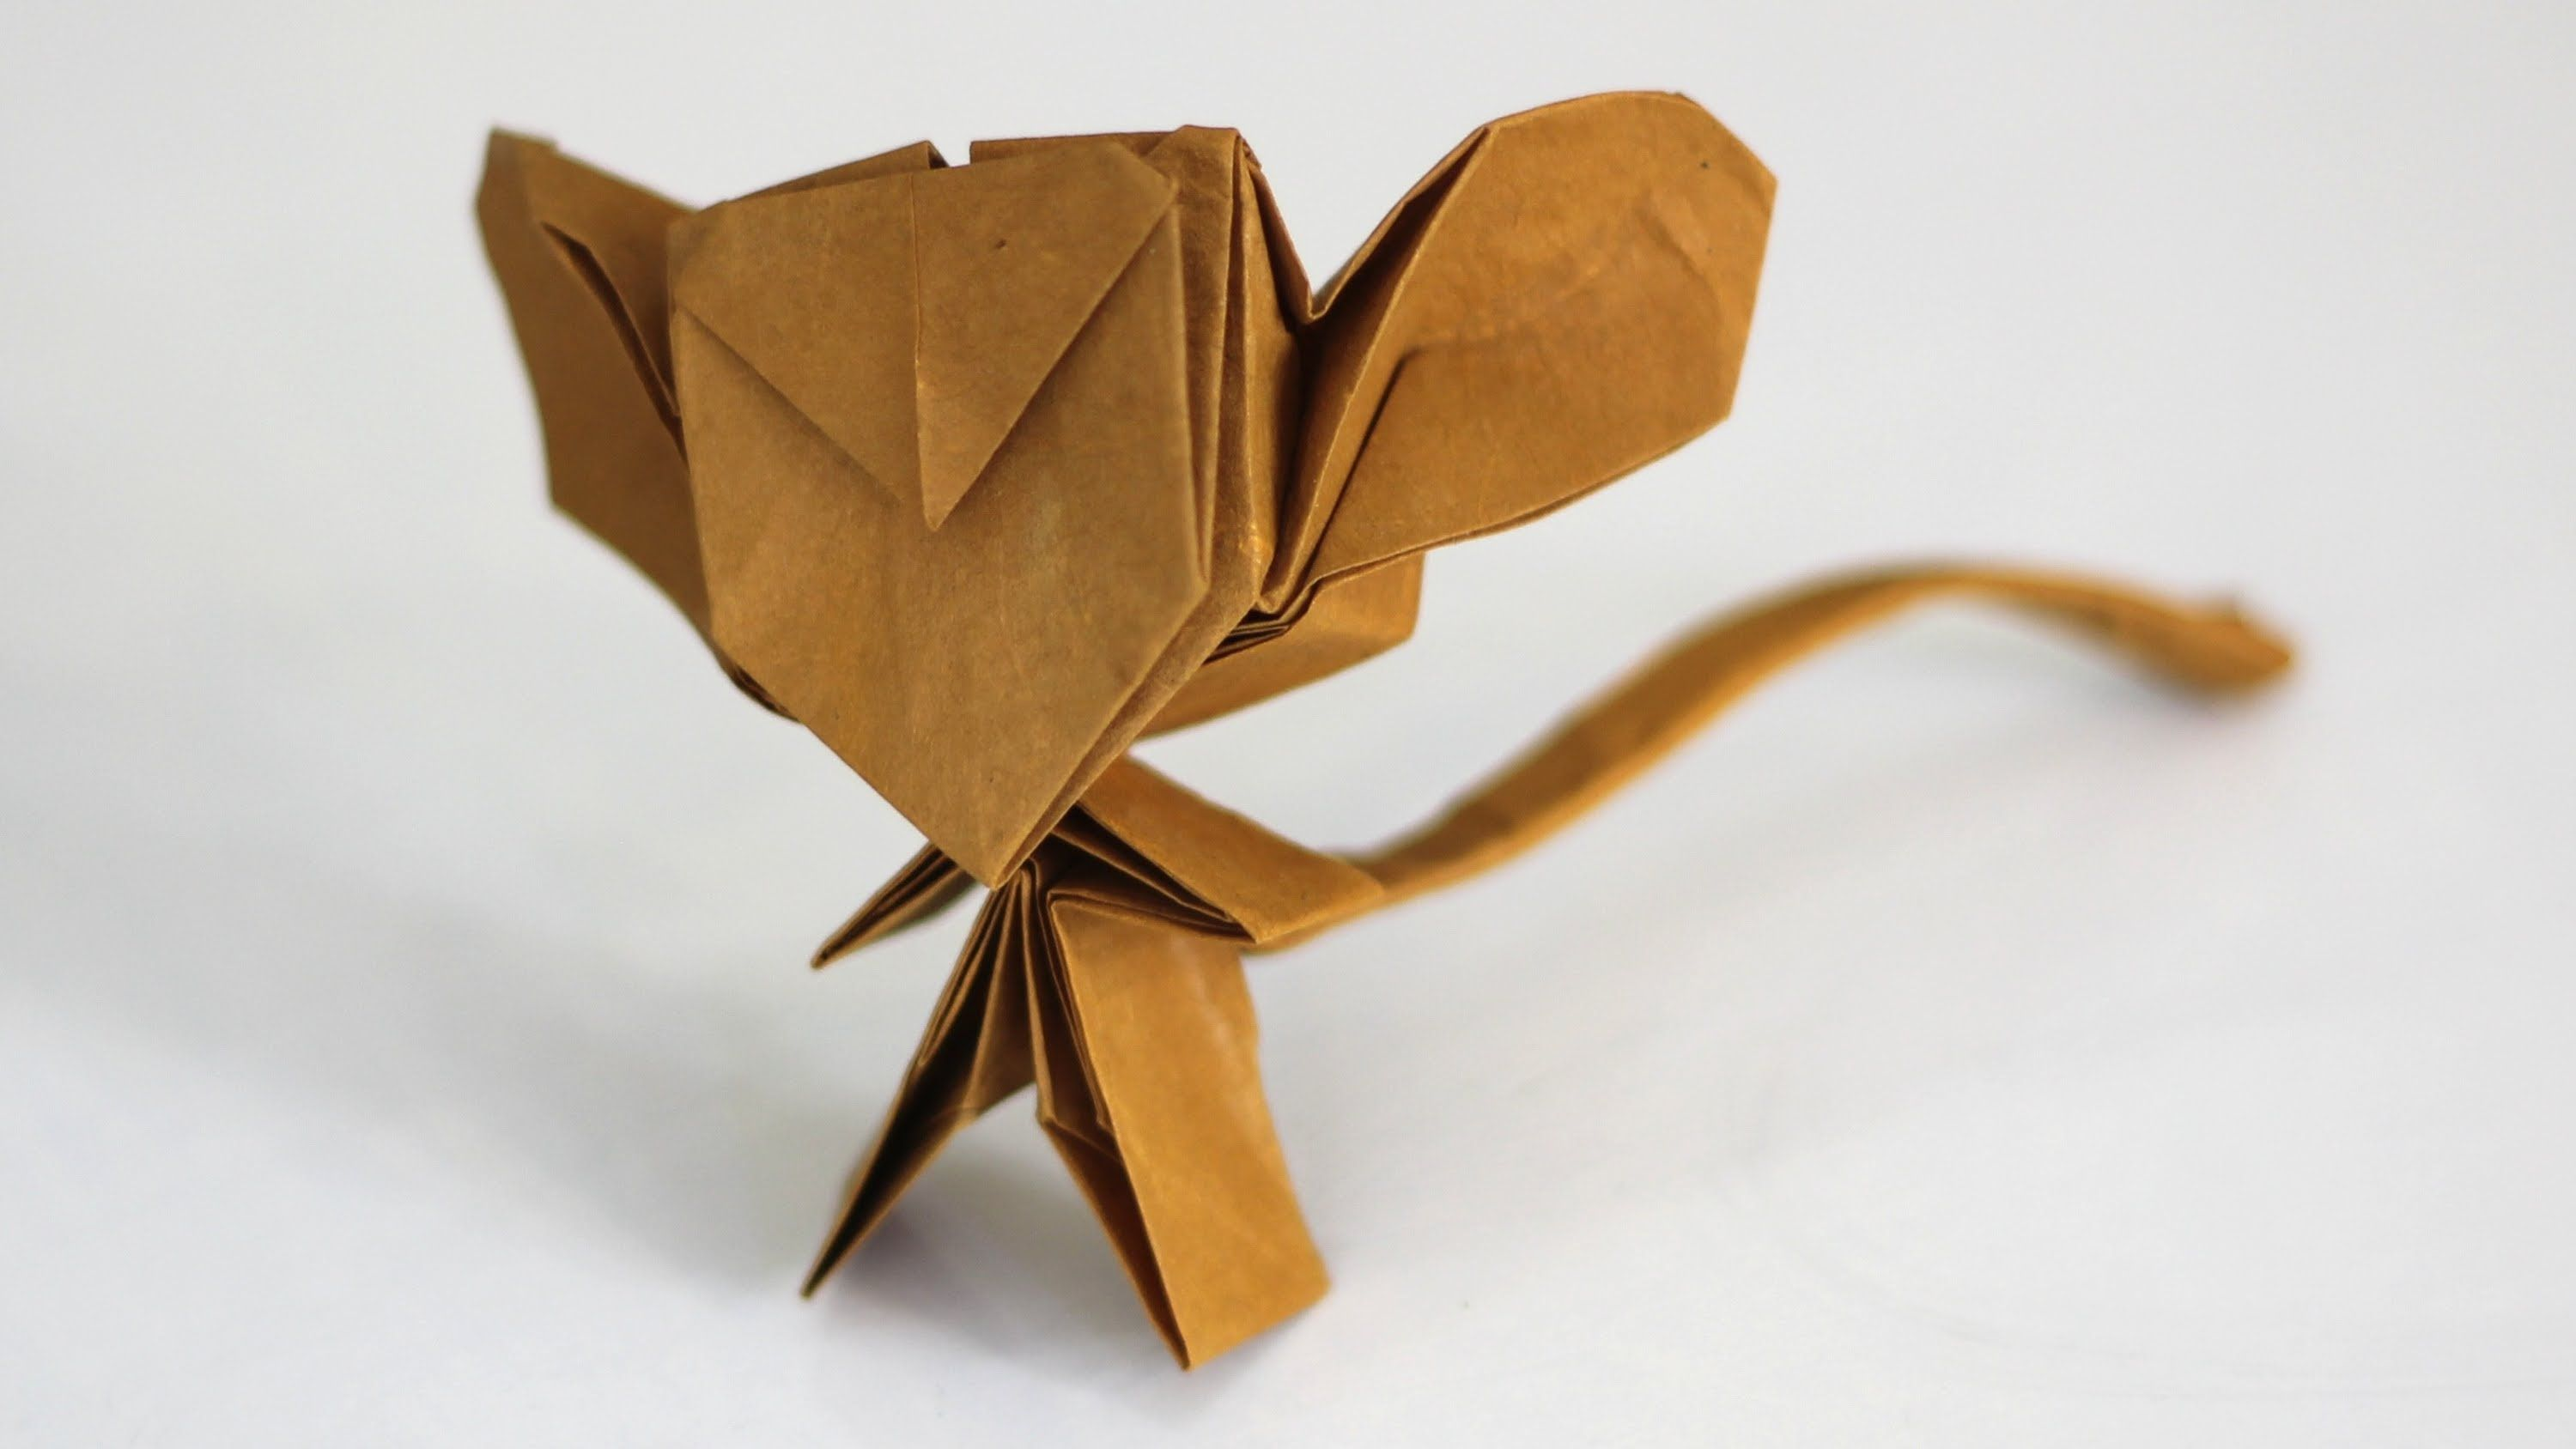 pin by afon lin on ���� pinterest origami oragami and craft